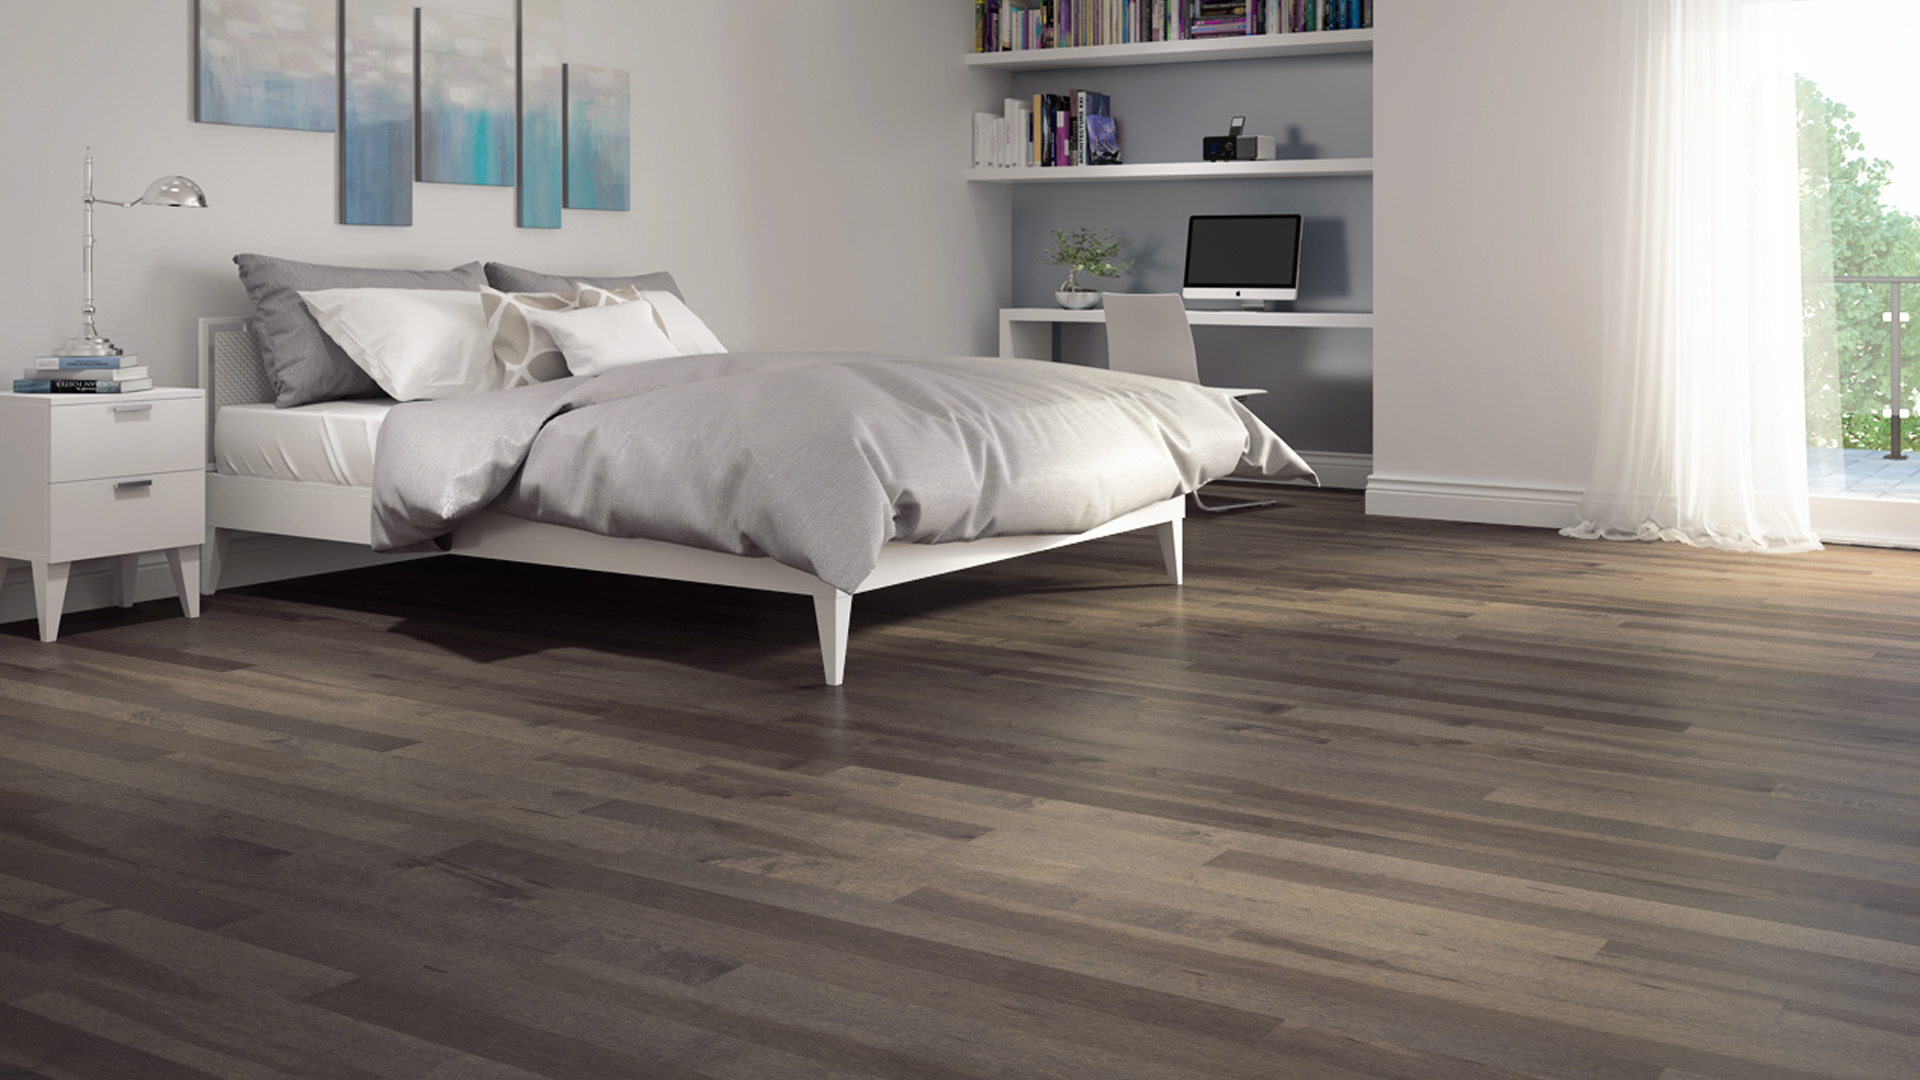 Hard maple dark grey | Dubeau hardwood floors | Bedroom decor